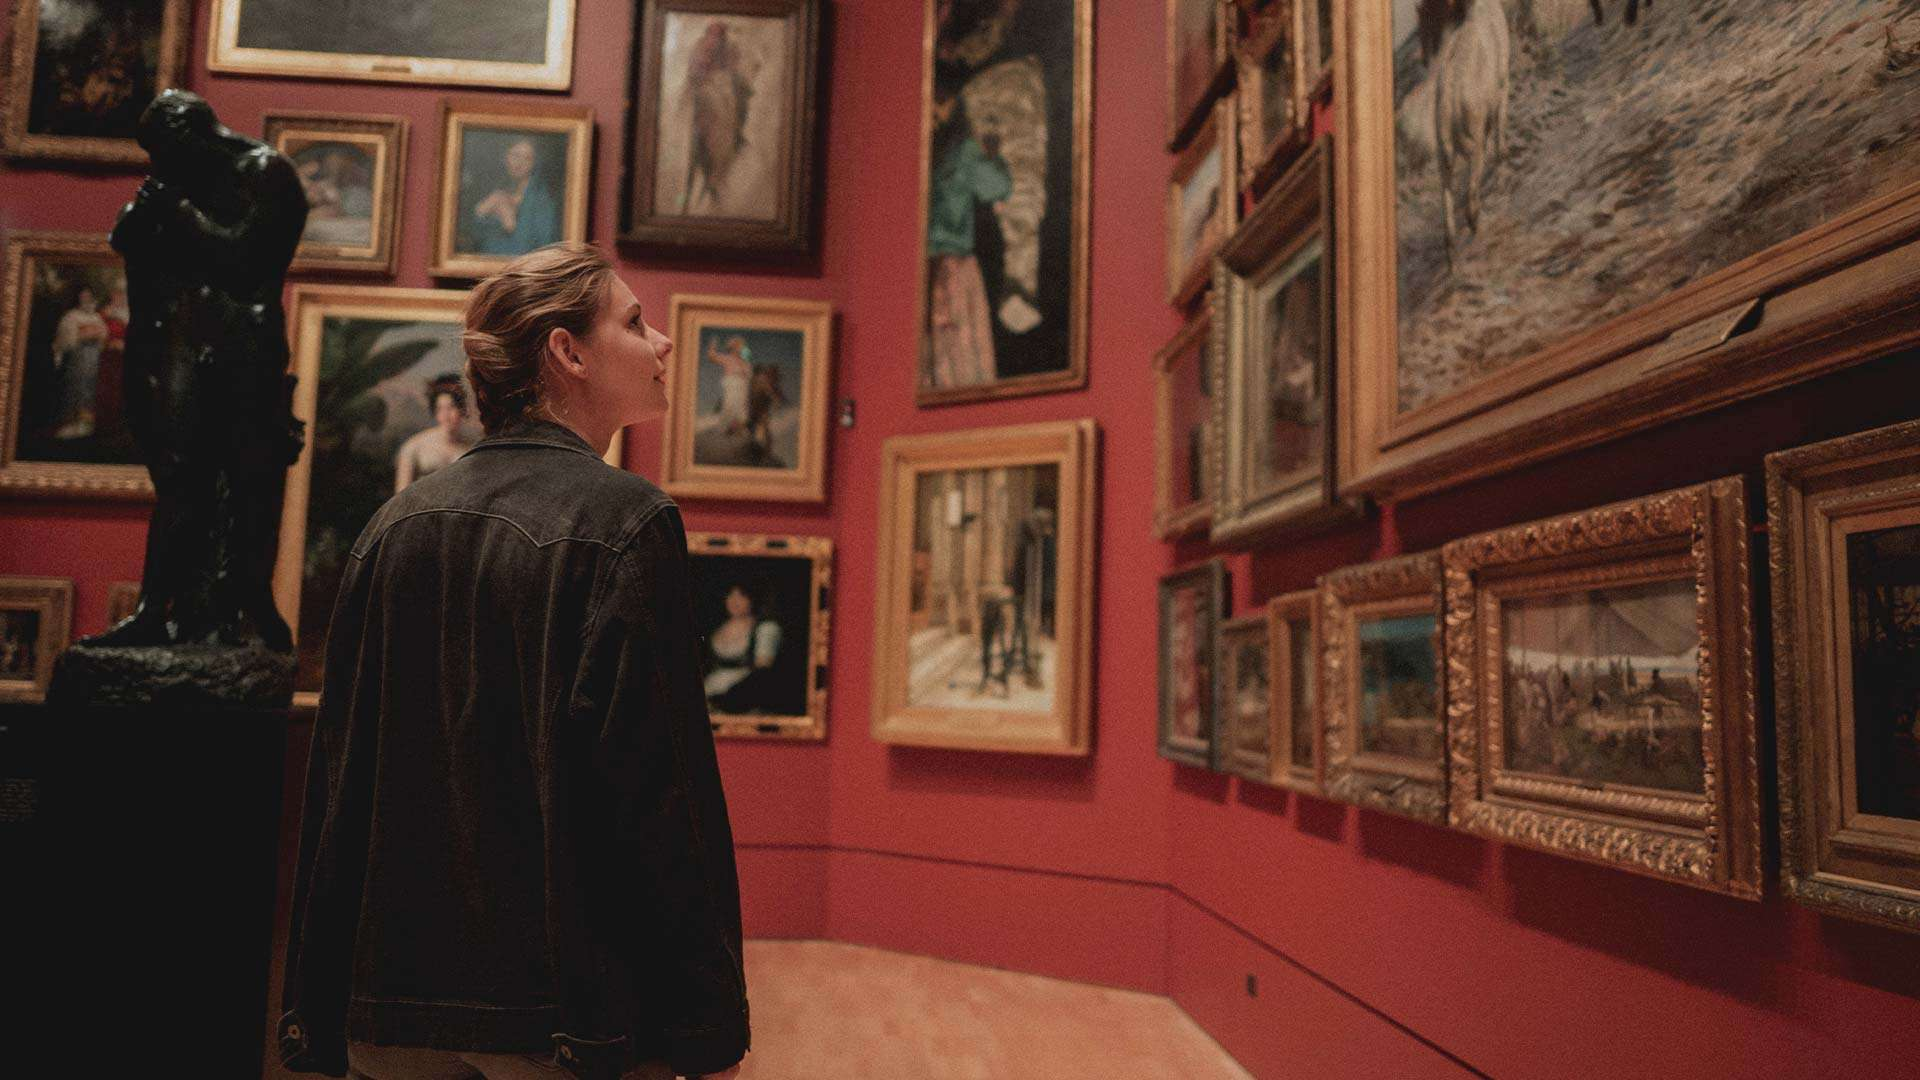 10 Big Reasons Why Art is Important